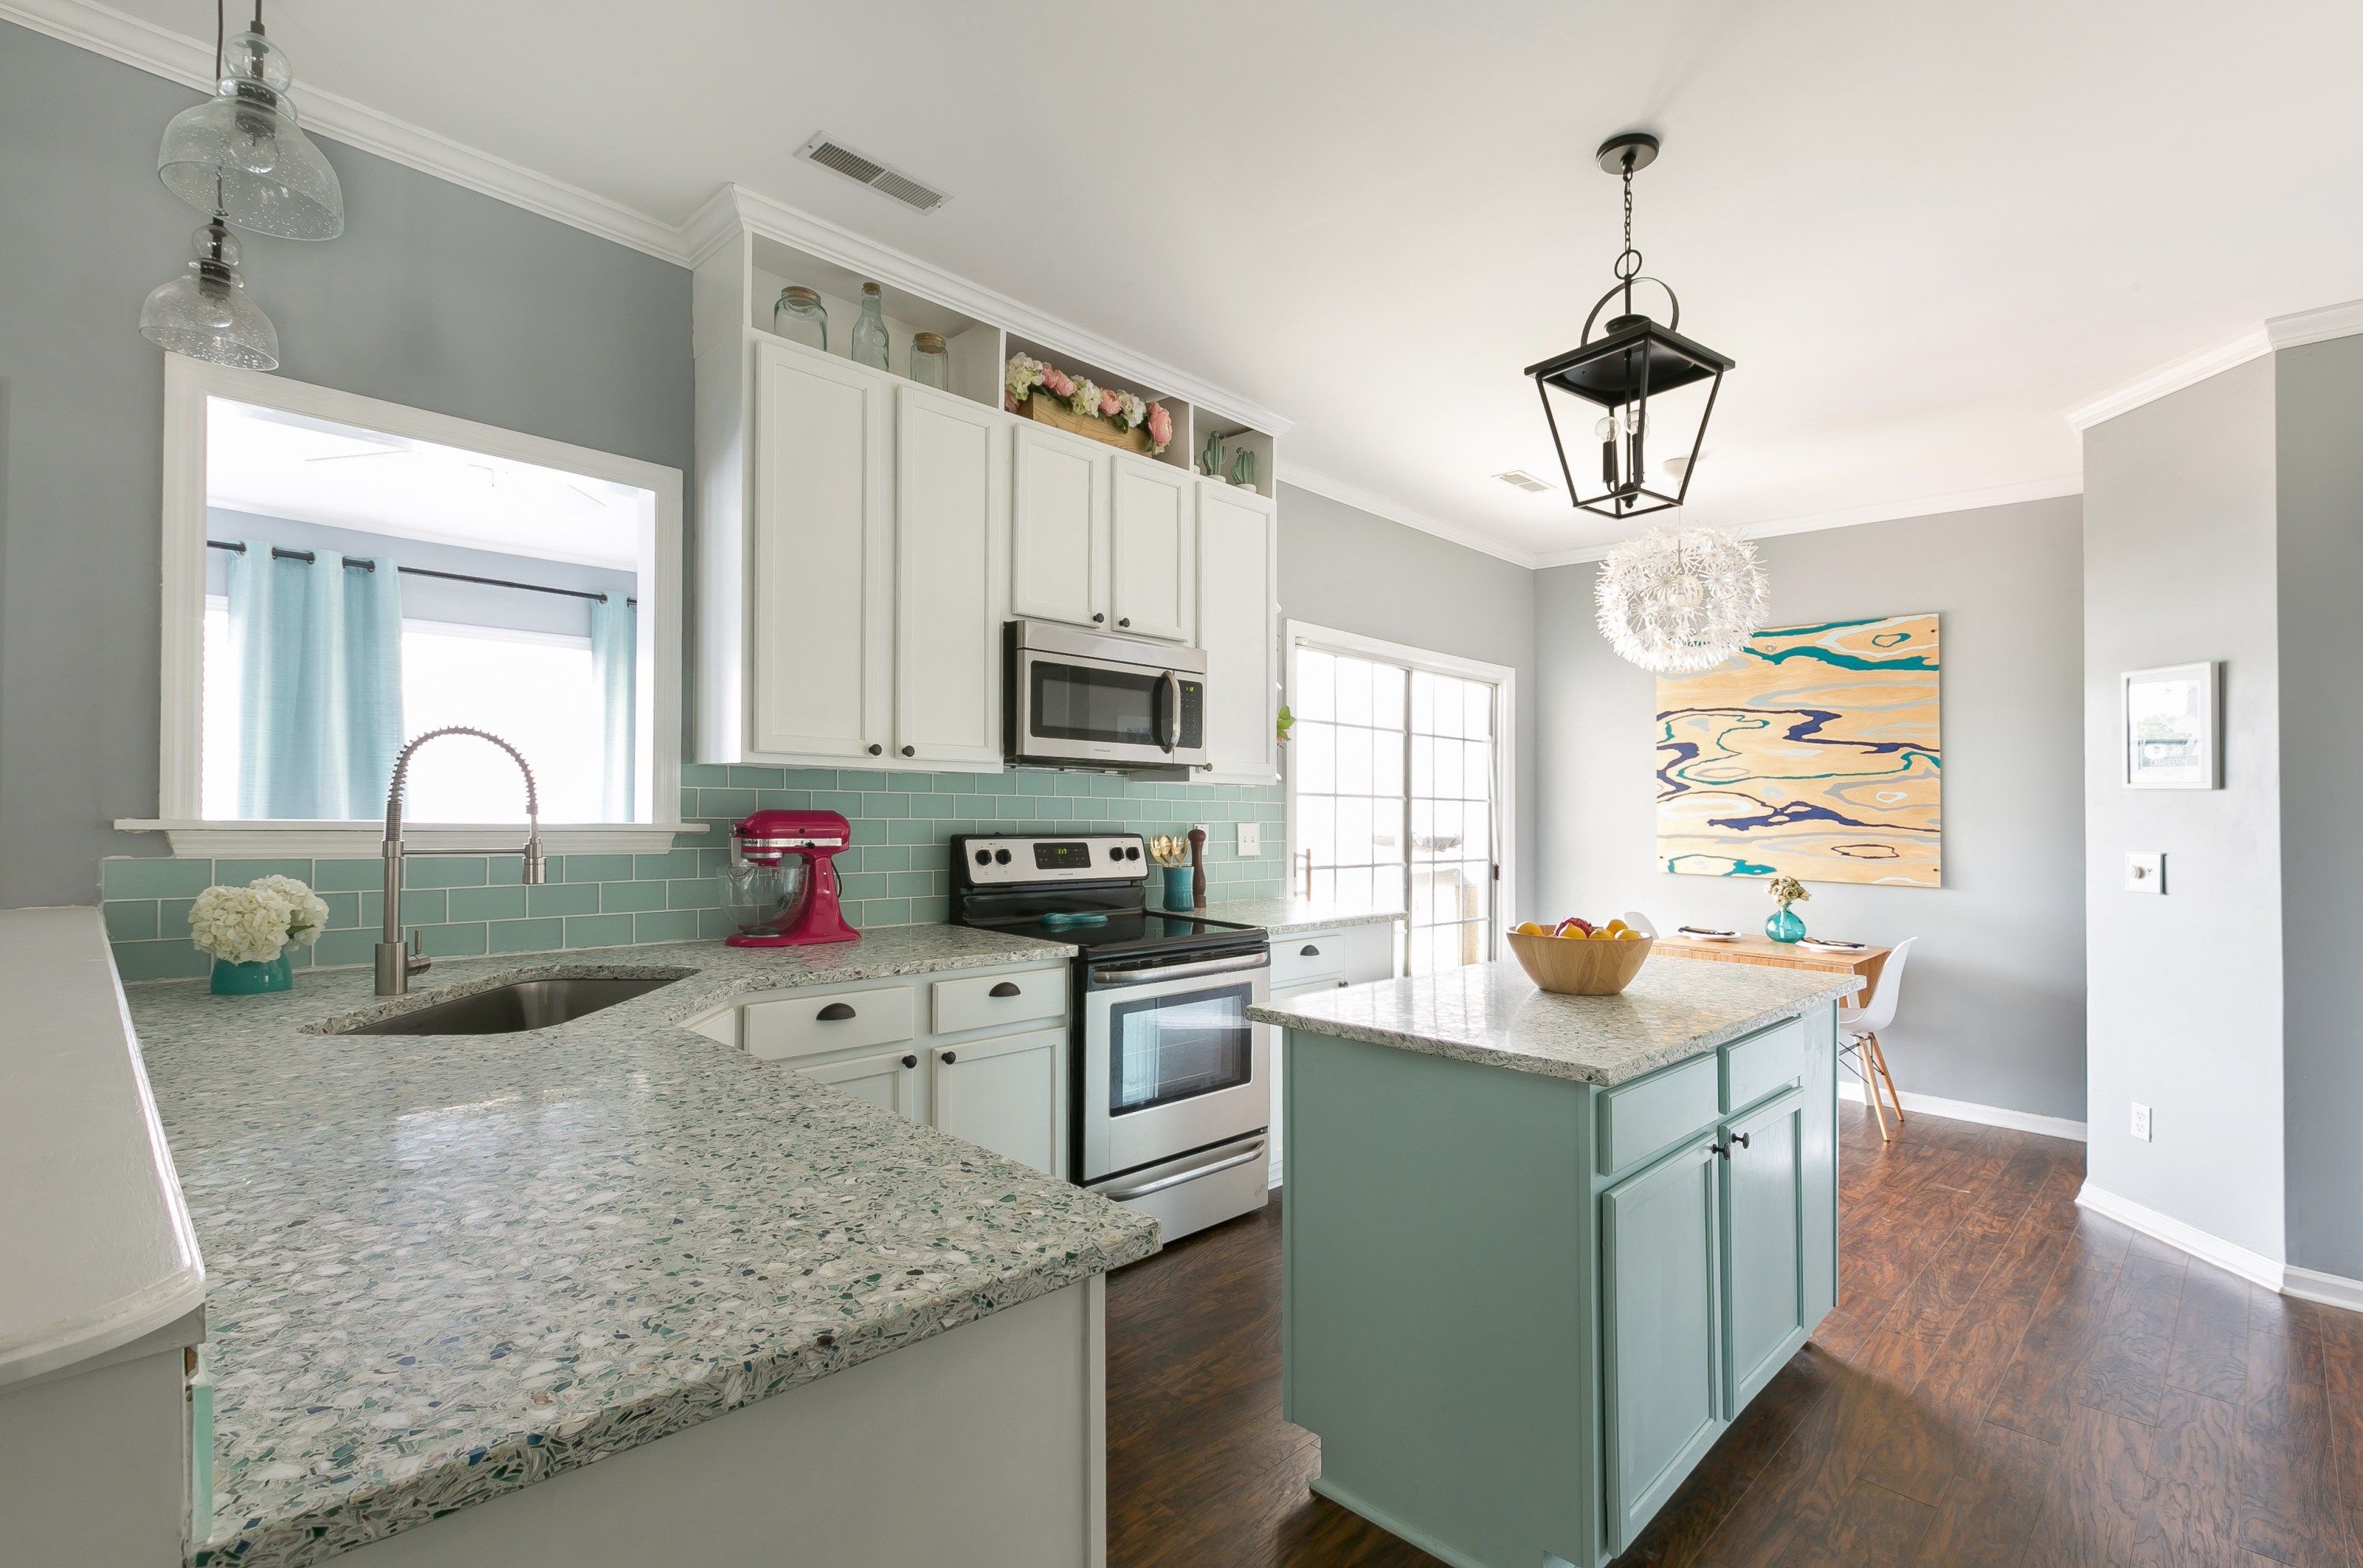 Our Kitchen for Charleston Home & Design Magazine | Design magazine ...